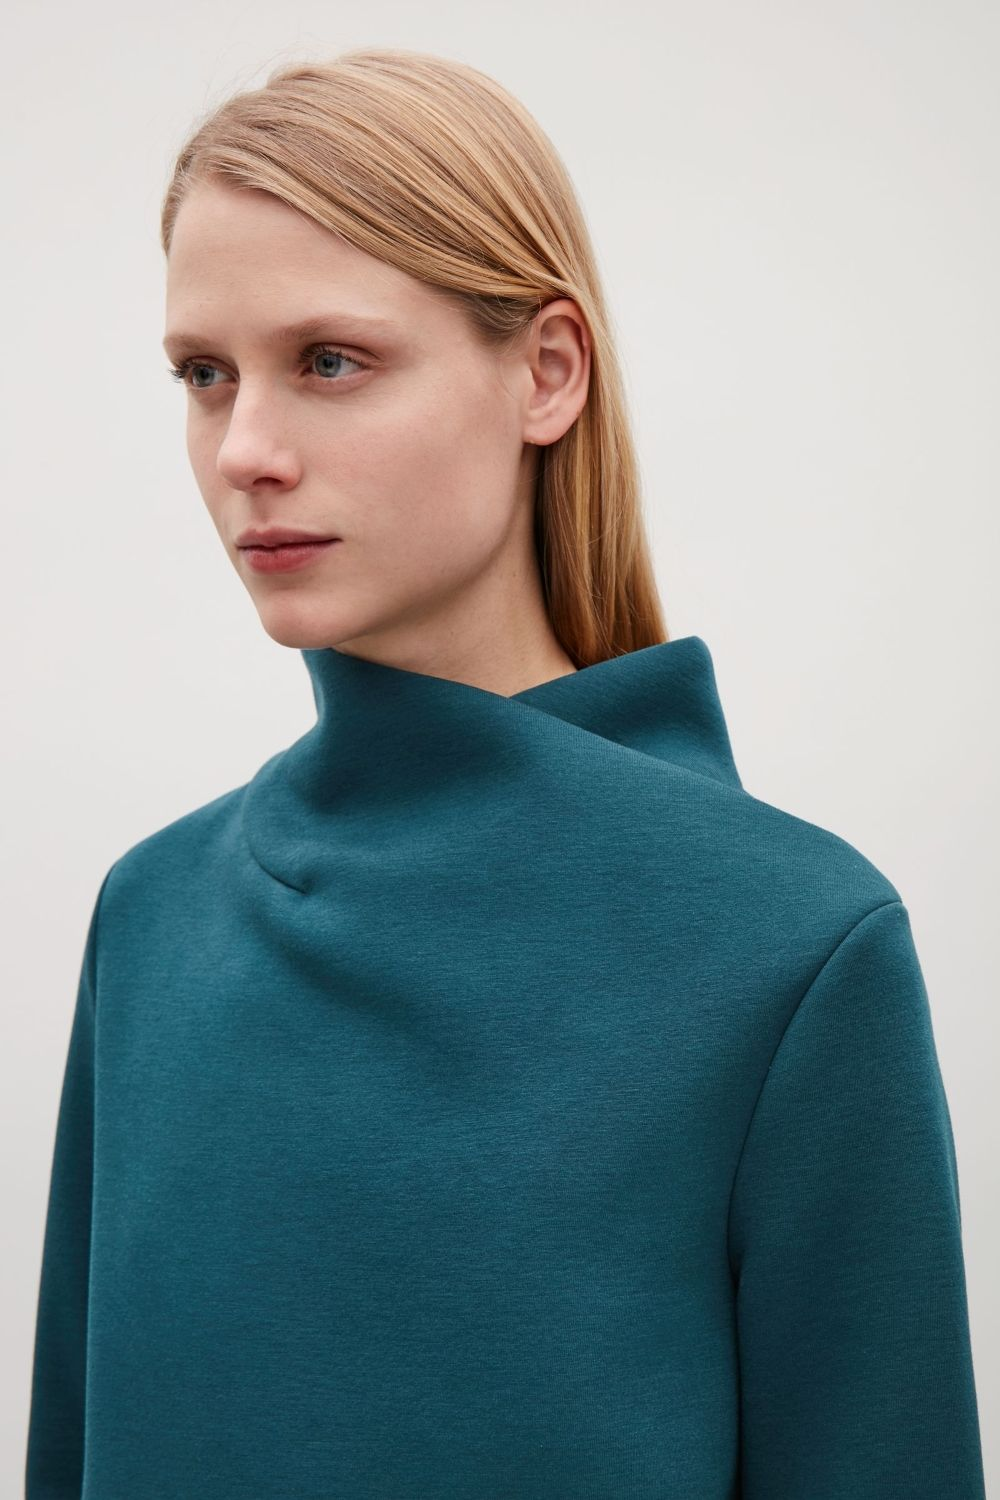 Cos green dress 2018  COS image  of Dress with draped neck in Teal  MEN  Pinterest